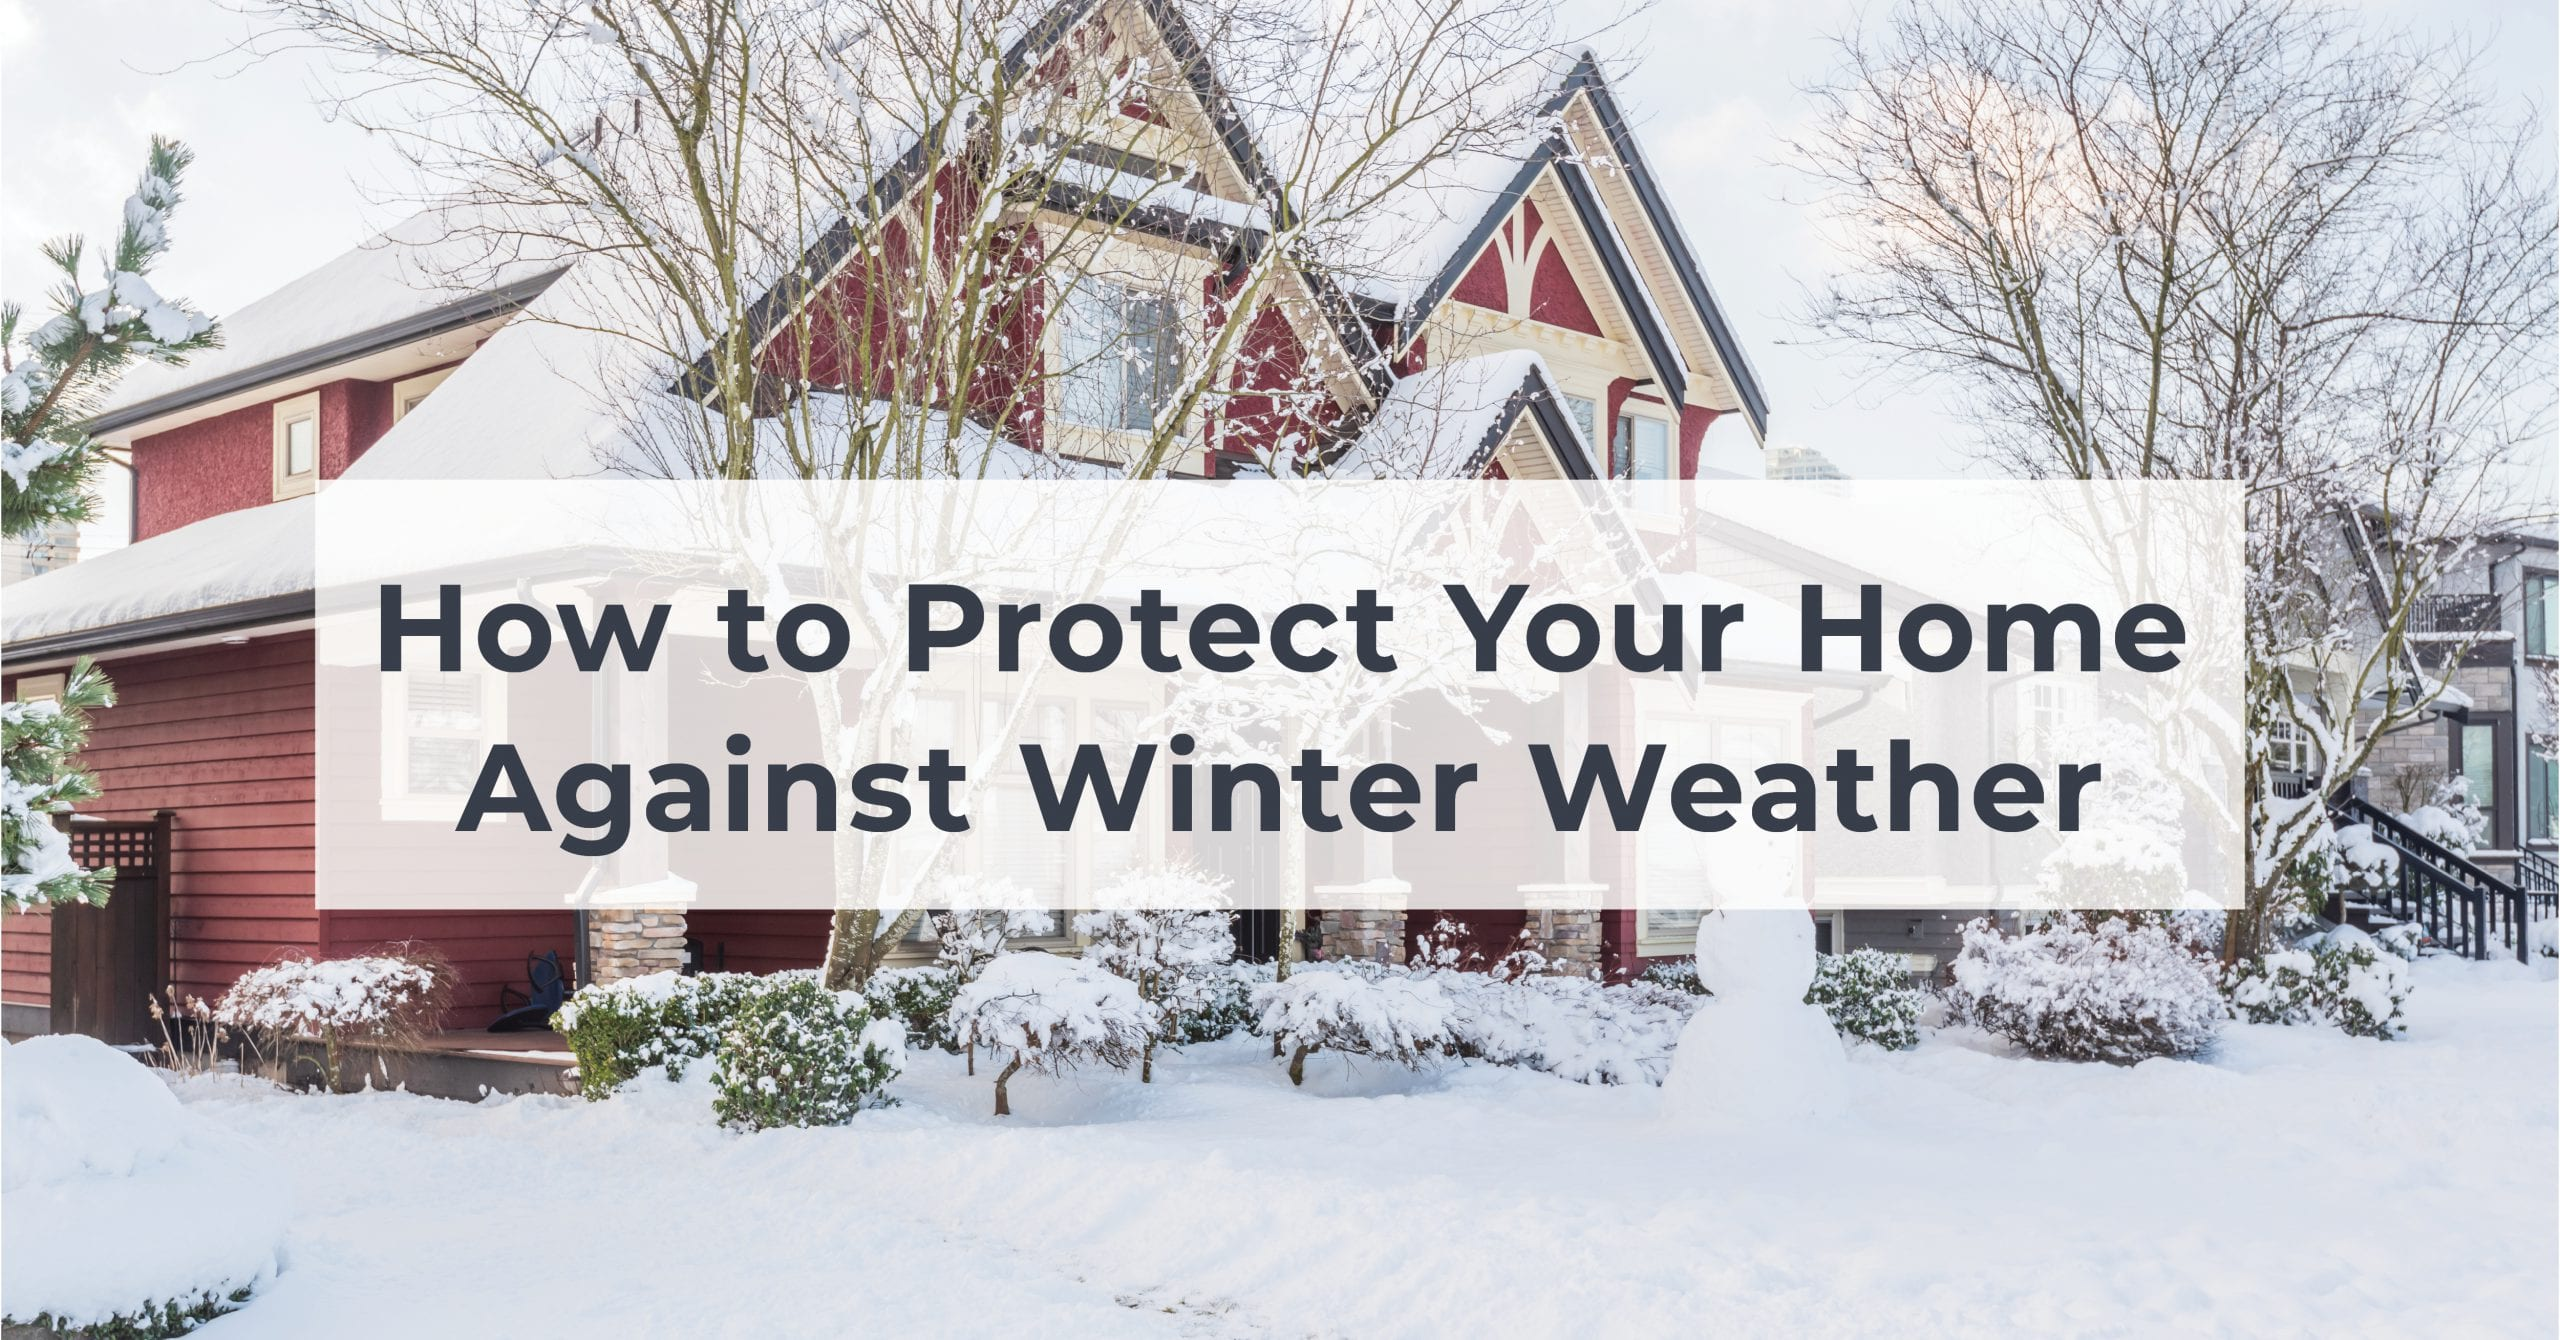 How to Protect Your Home Against Winter Weather